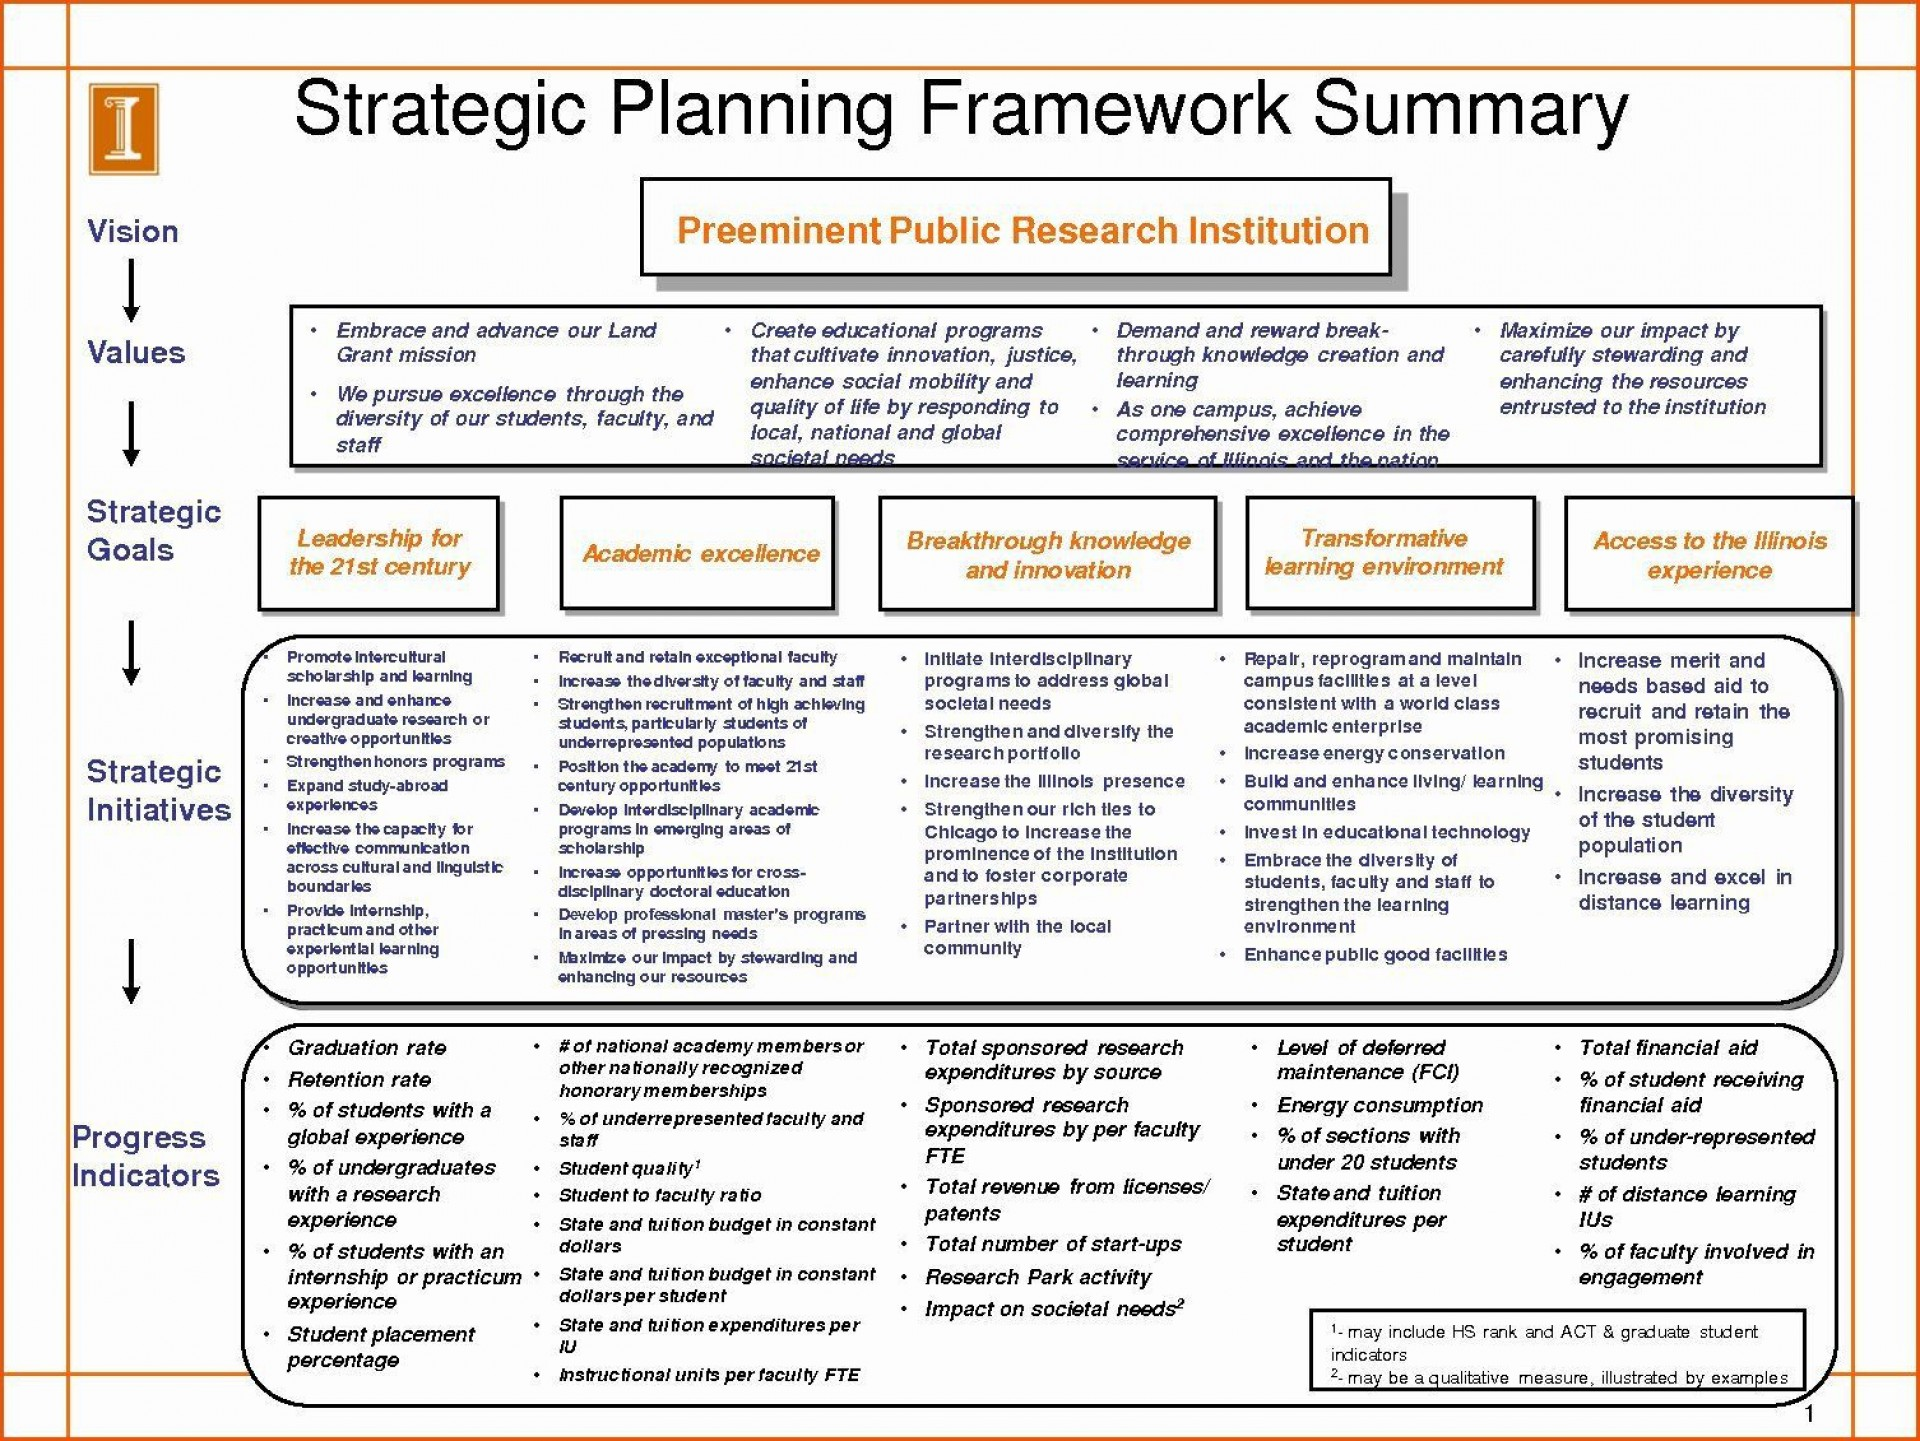 002 Awesome Strategic Plan Template Word Inspiration  Format Busines Doc1920